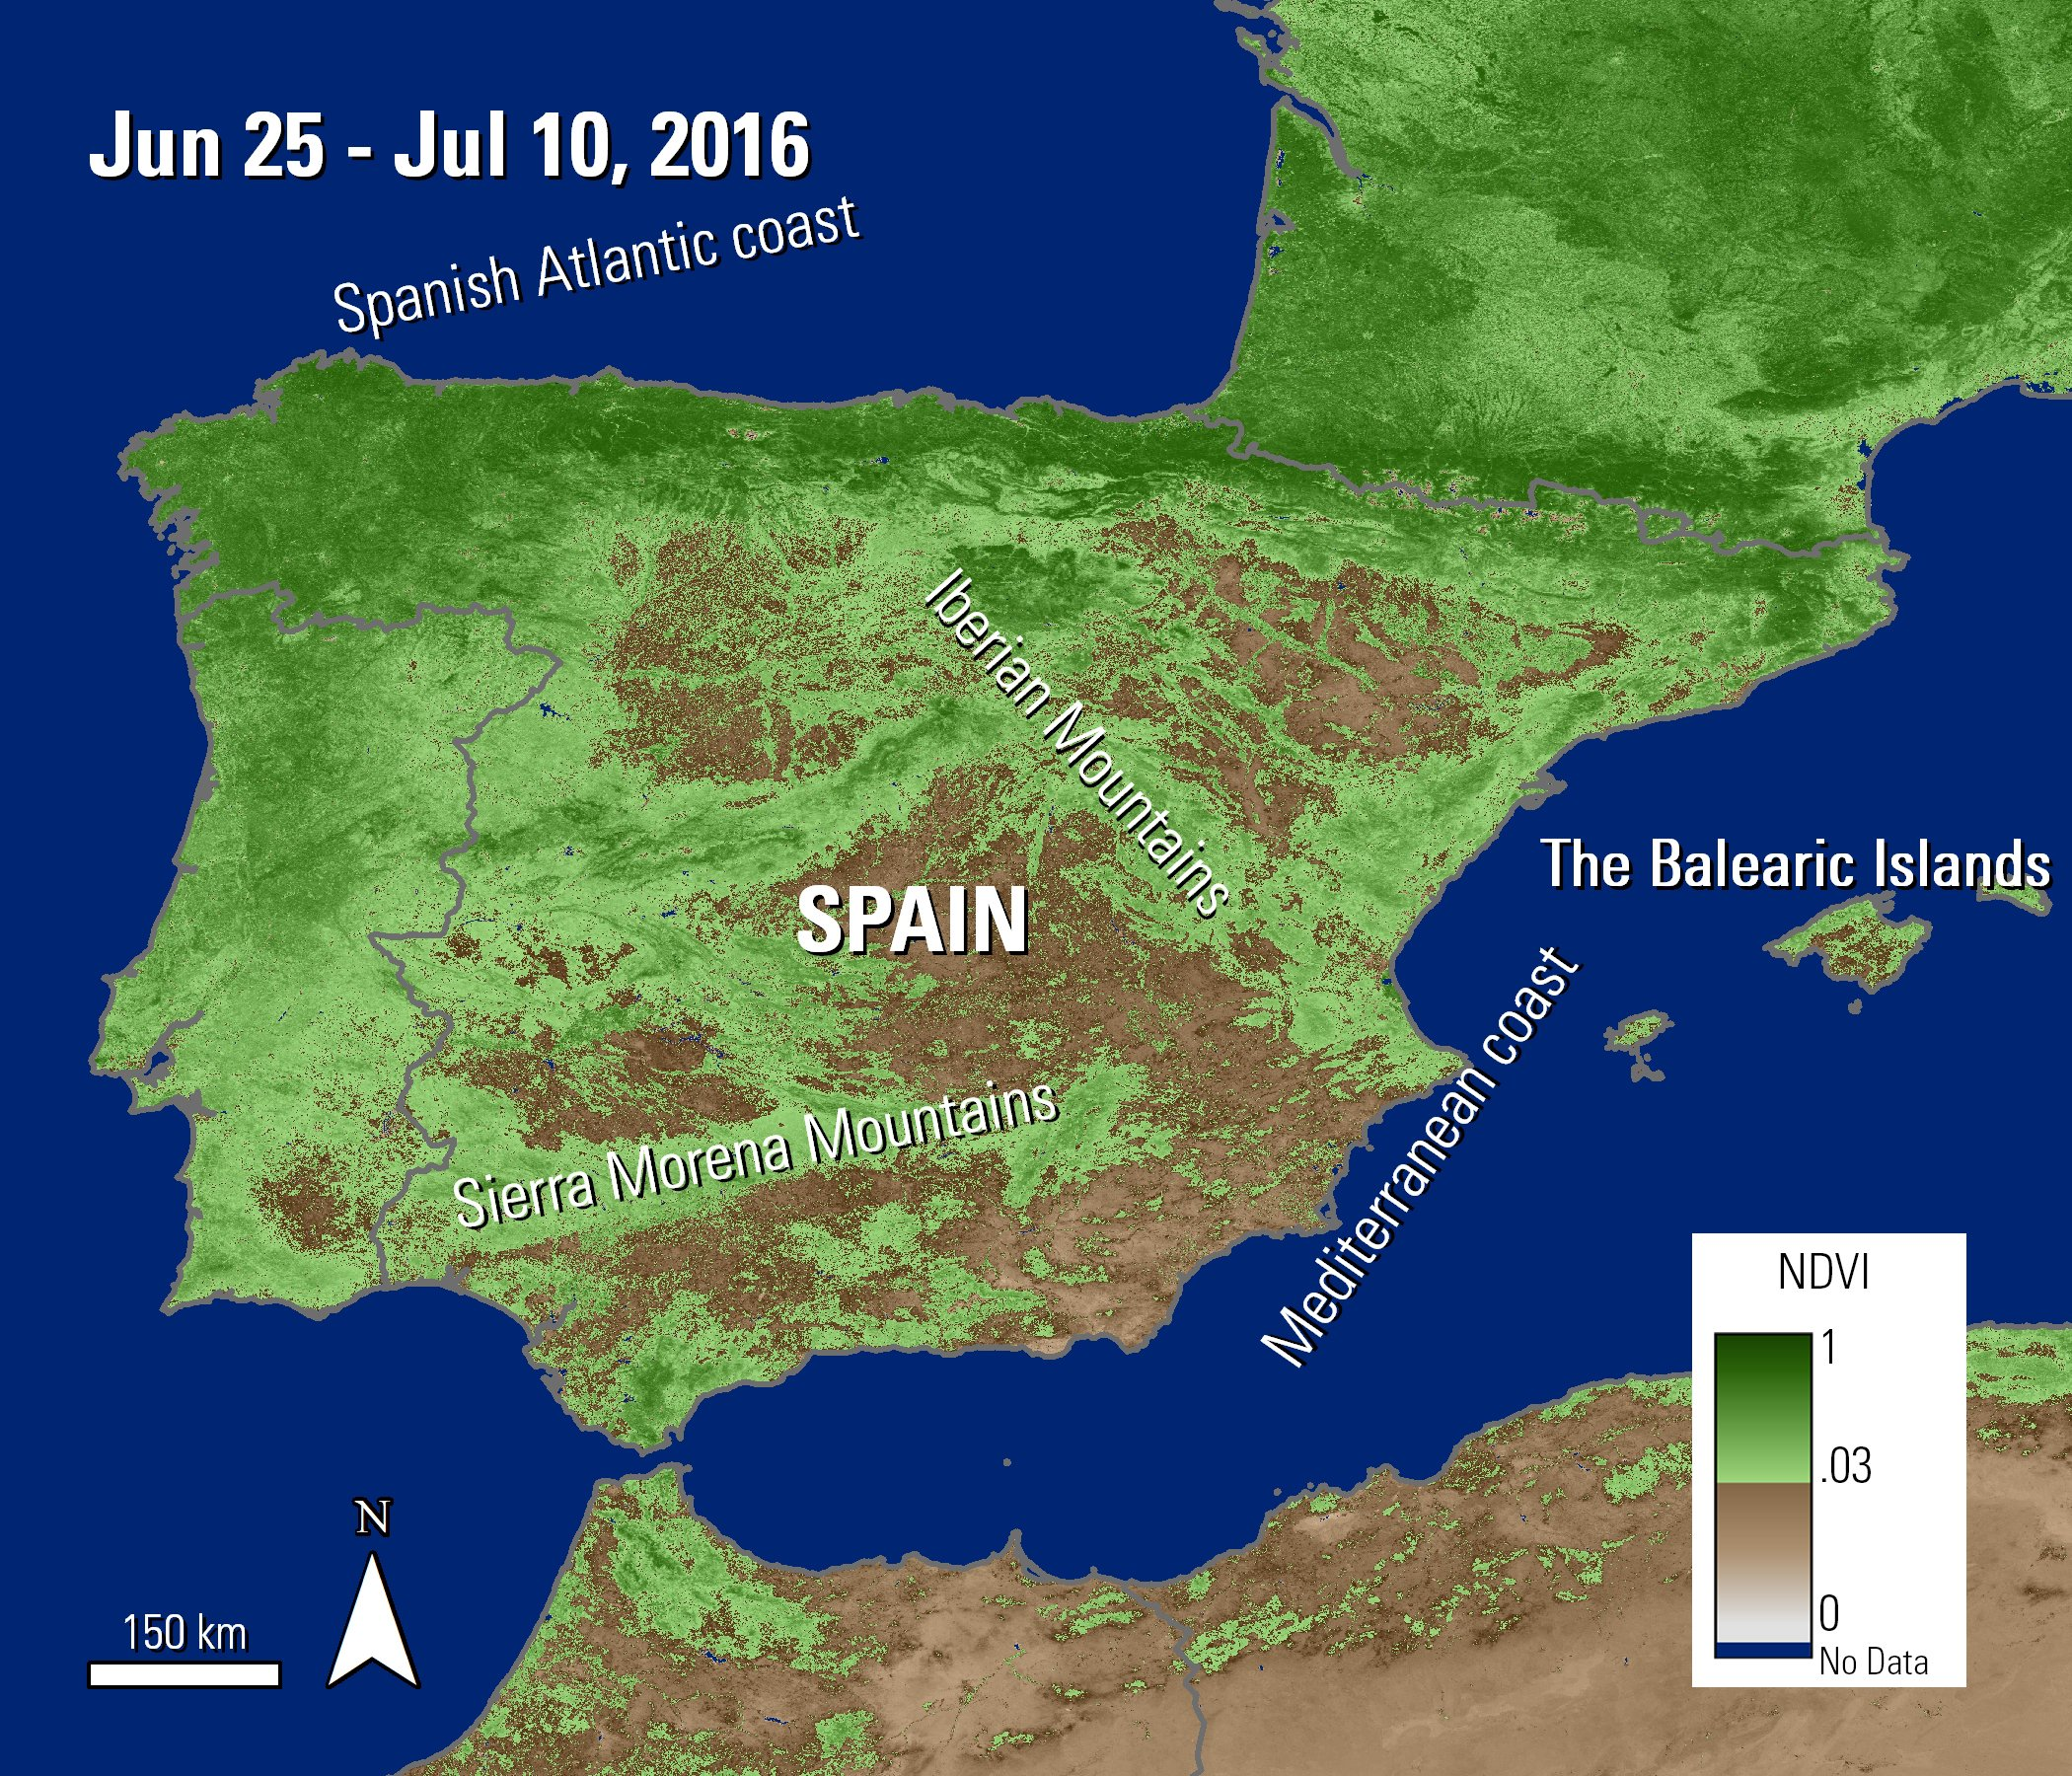 The MODIS NDVI layer over Spain and the Balearic Islands. Vegetation is shown in various shades from brown to dark green. Areas in north and western Spain are show as green, where as areas in southern and East Spain are more brown.